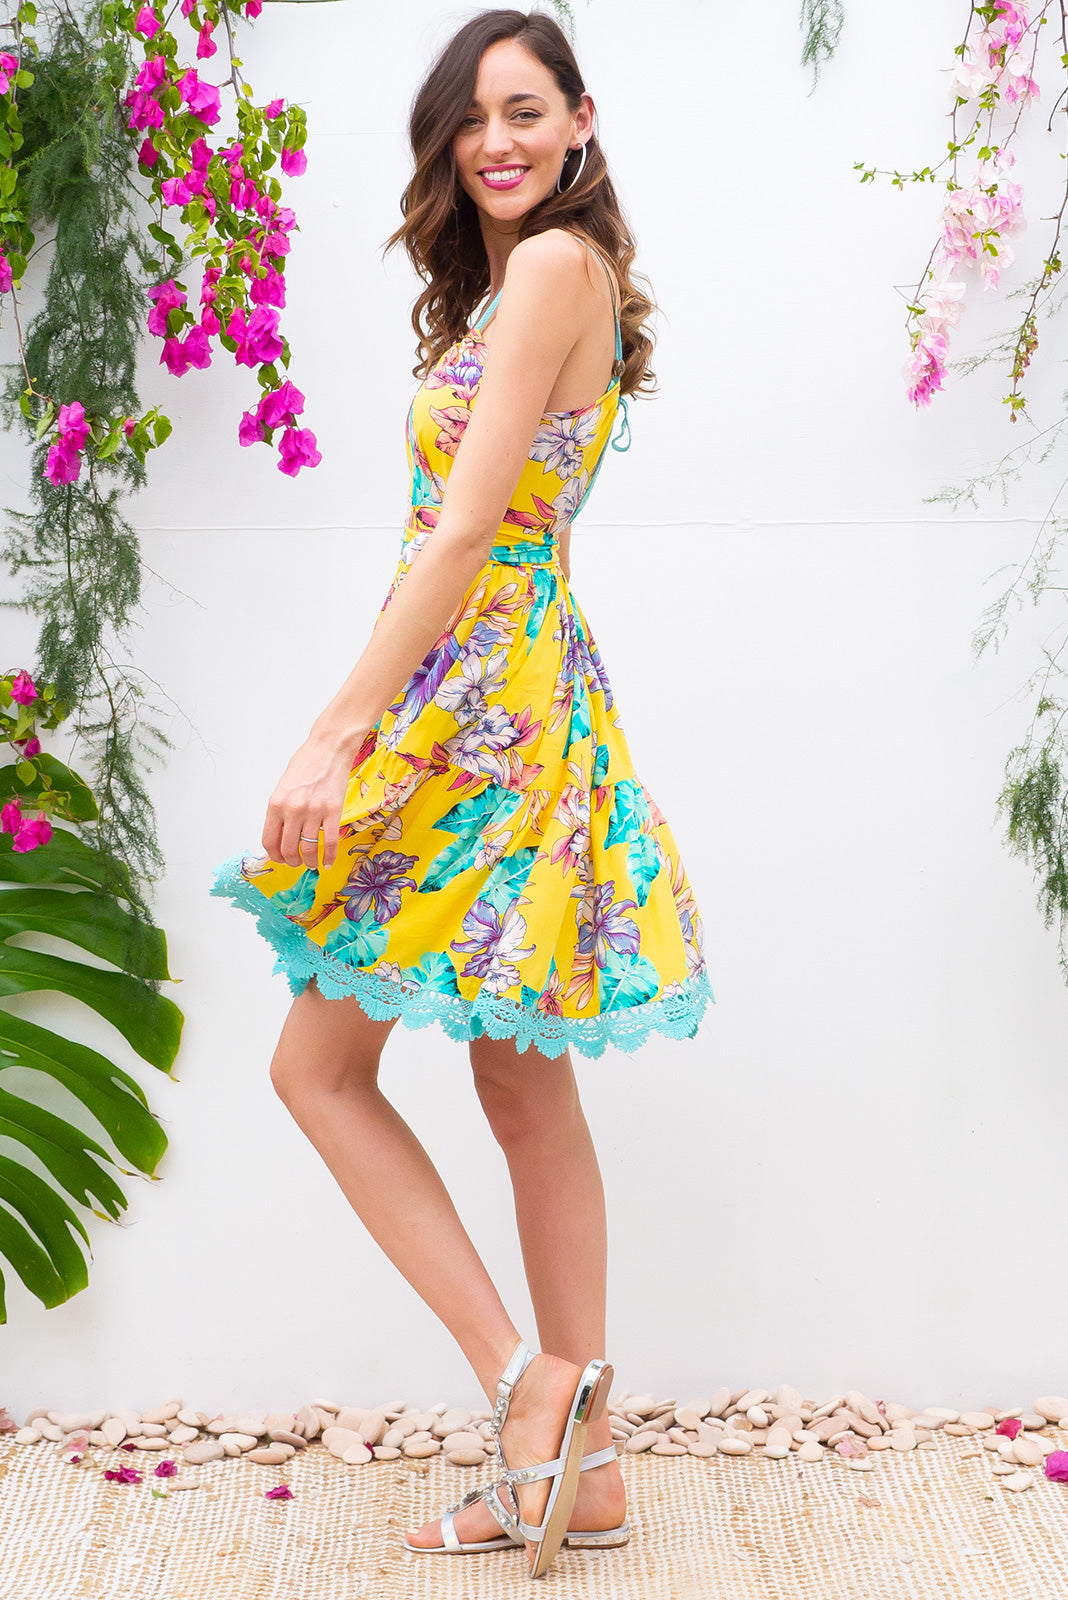 Santorini Pineapple Punch tiered dress with an adjustable rope neckline, deep side pockets and cotton lace detailing in bright yellow tropical print on 100% cotton